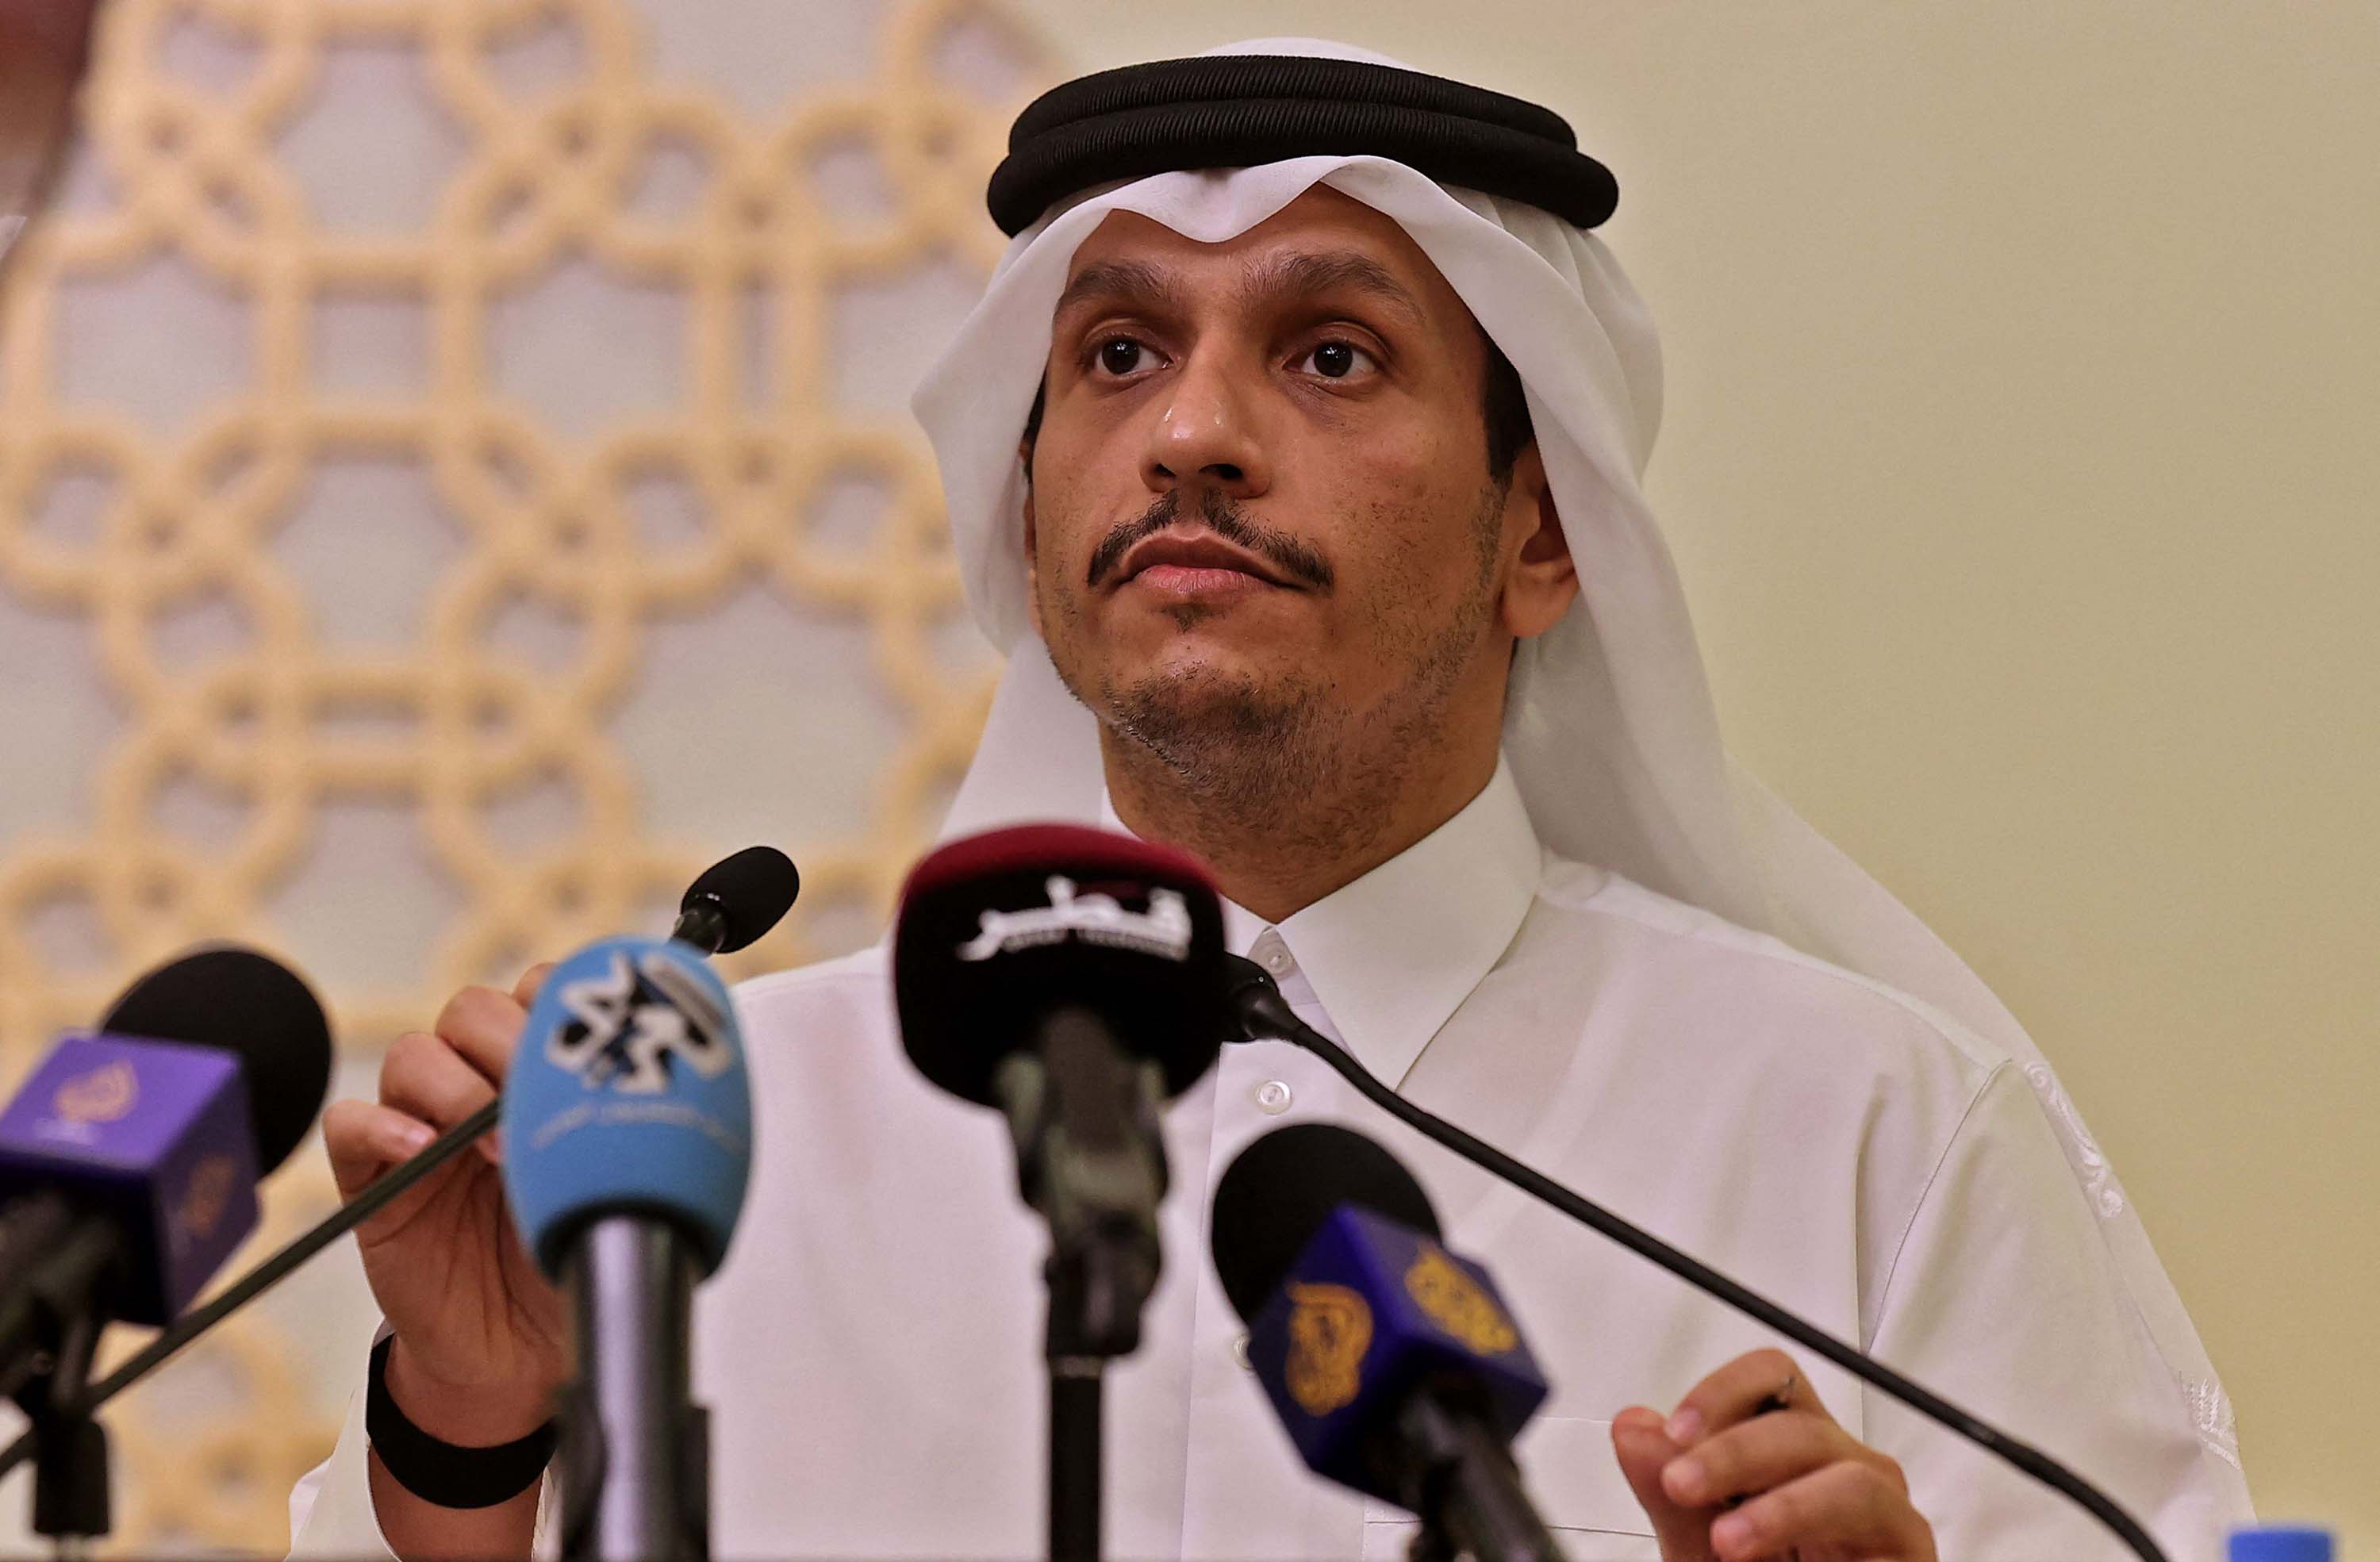 Qatar's Foreign Minister Sheikh Mohammed bin Abdulrahman Al-Thani speaks during a press conference in Doha, Qatar, on September 2.